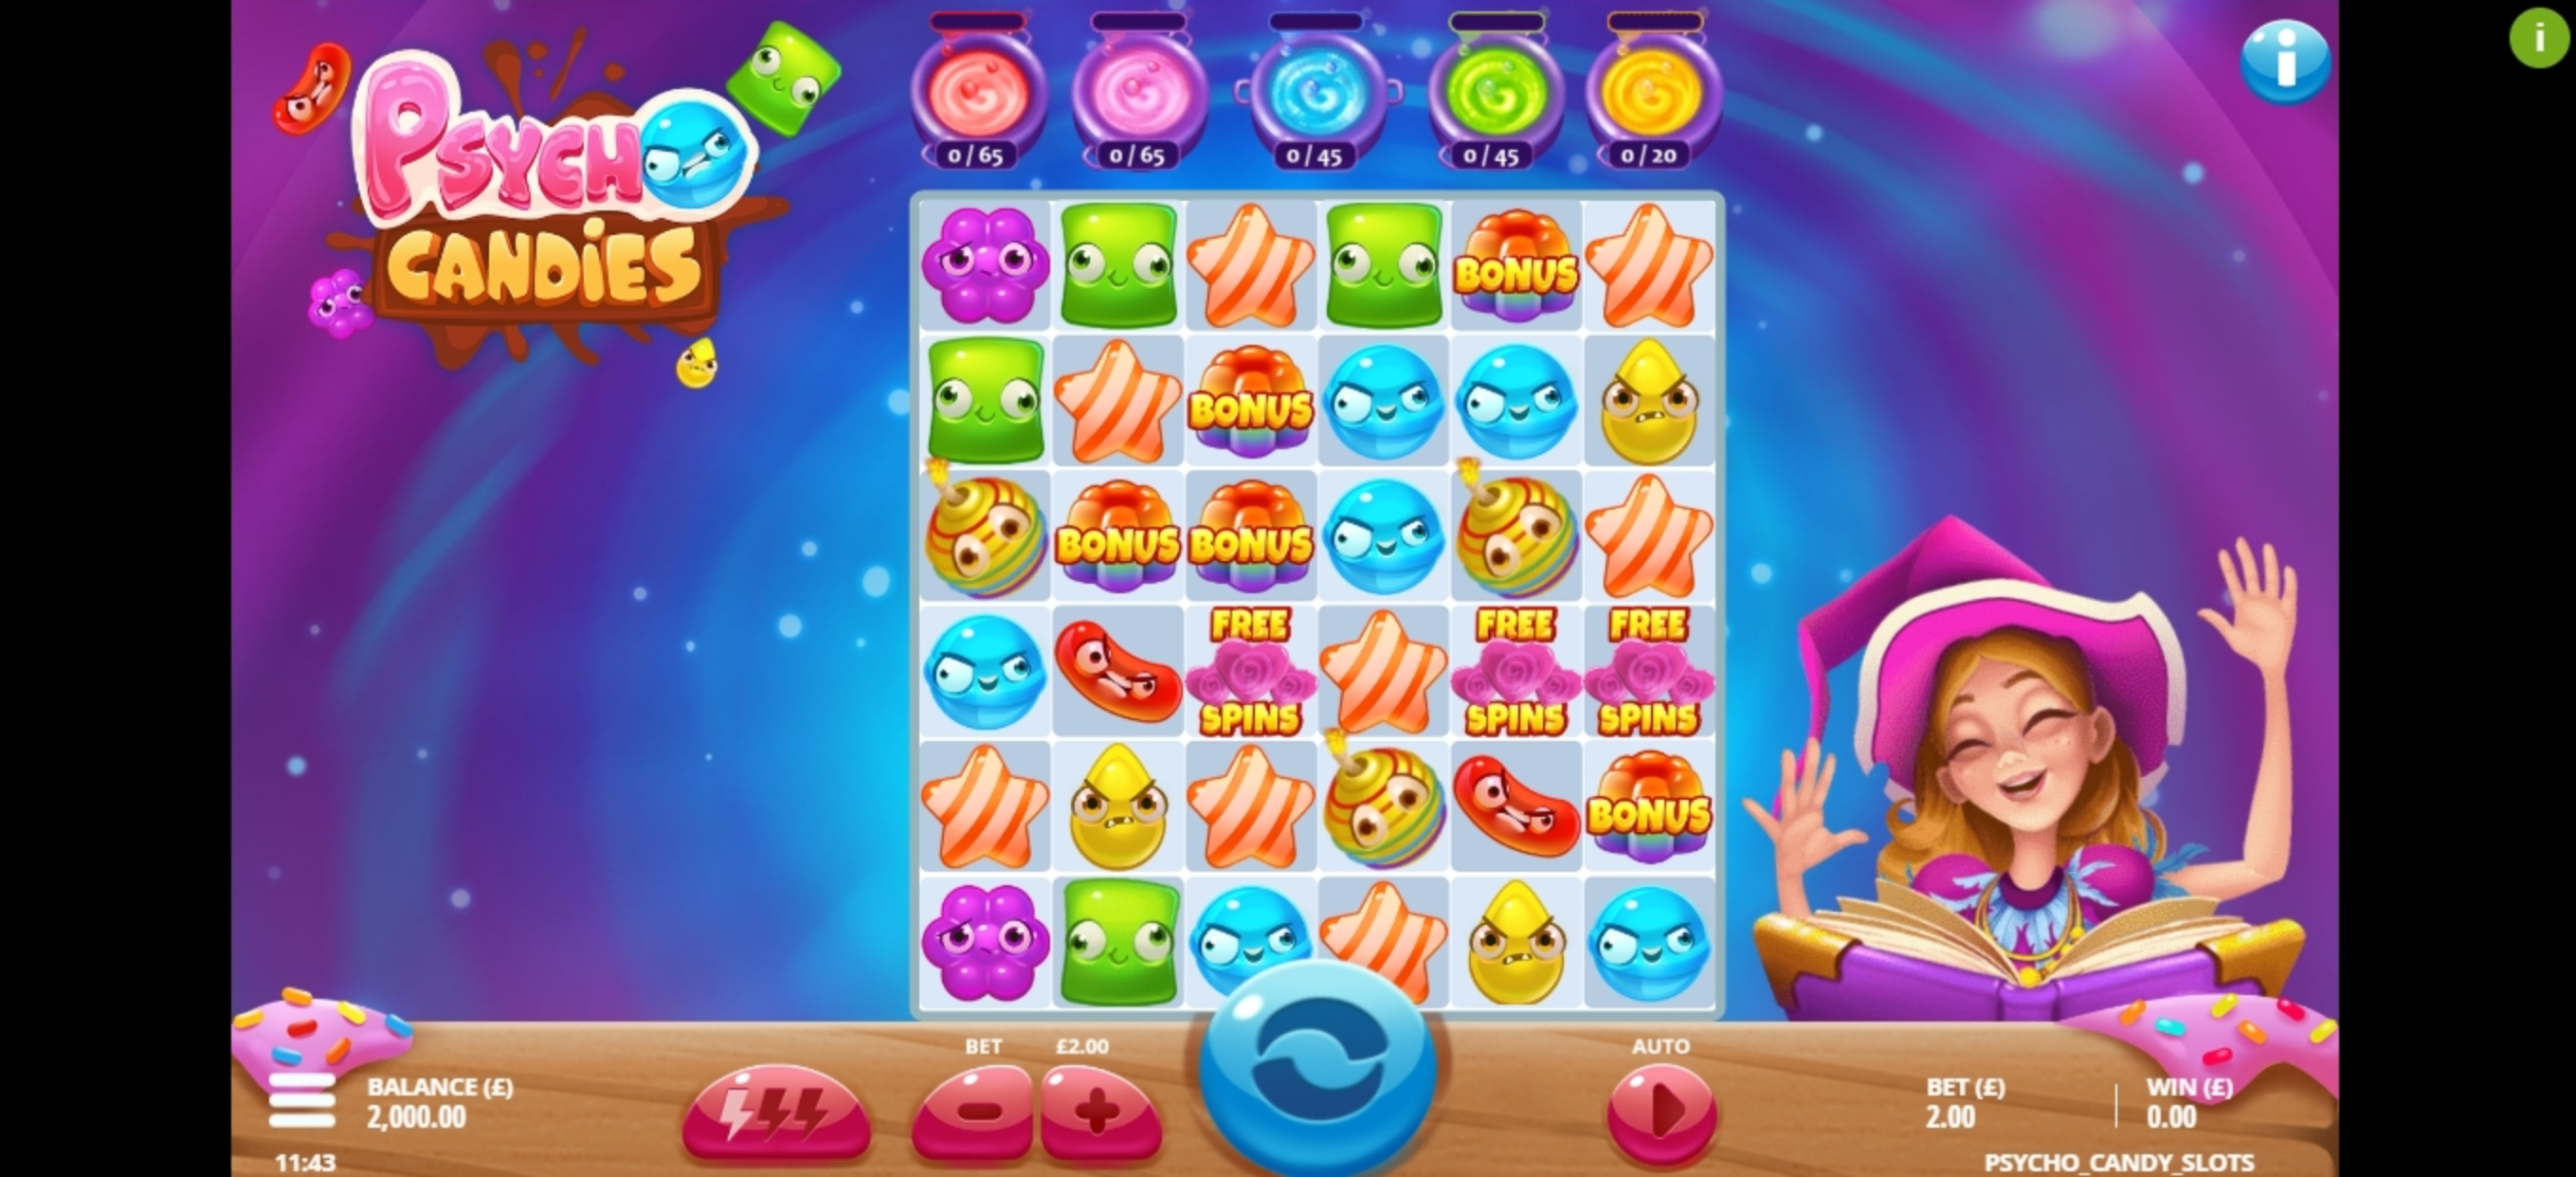 Reels in Psycho Candies Slot Game by Gluck Games